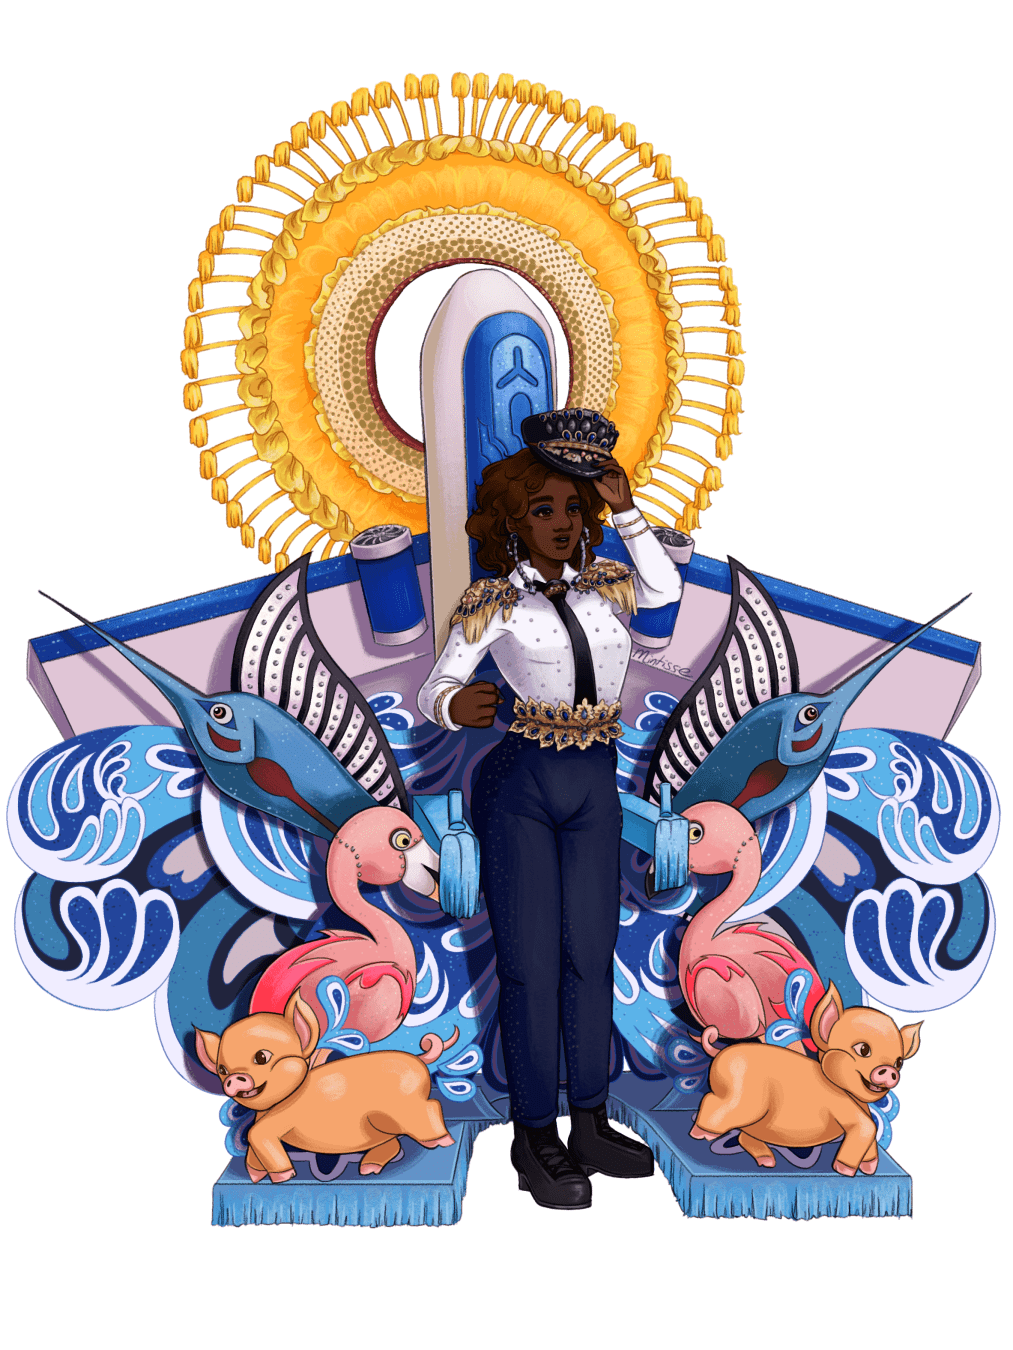 An illustration of a woman in a bedazzled pilot costume, with some props of swordfish, flamingos, pigs, a plane, and a sun piece behind her.